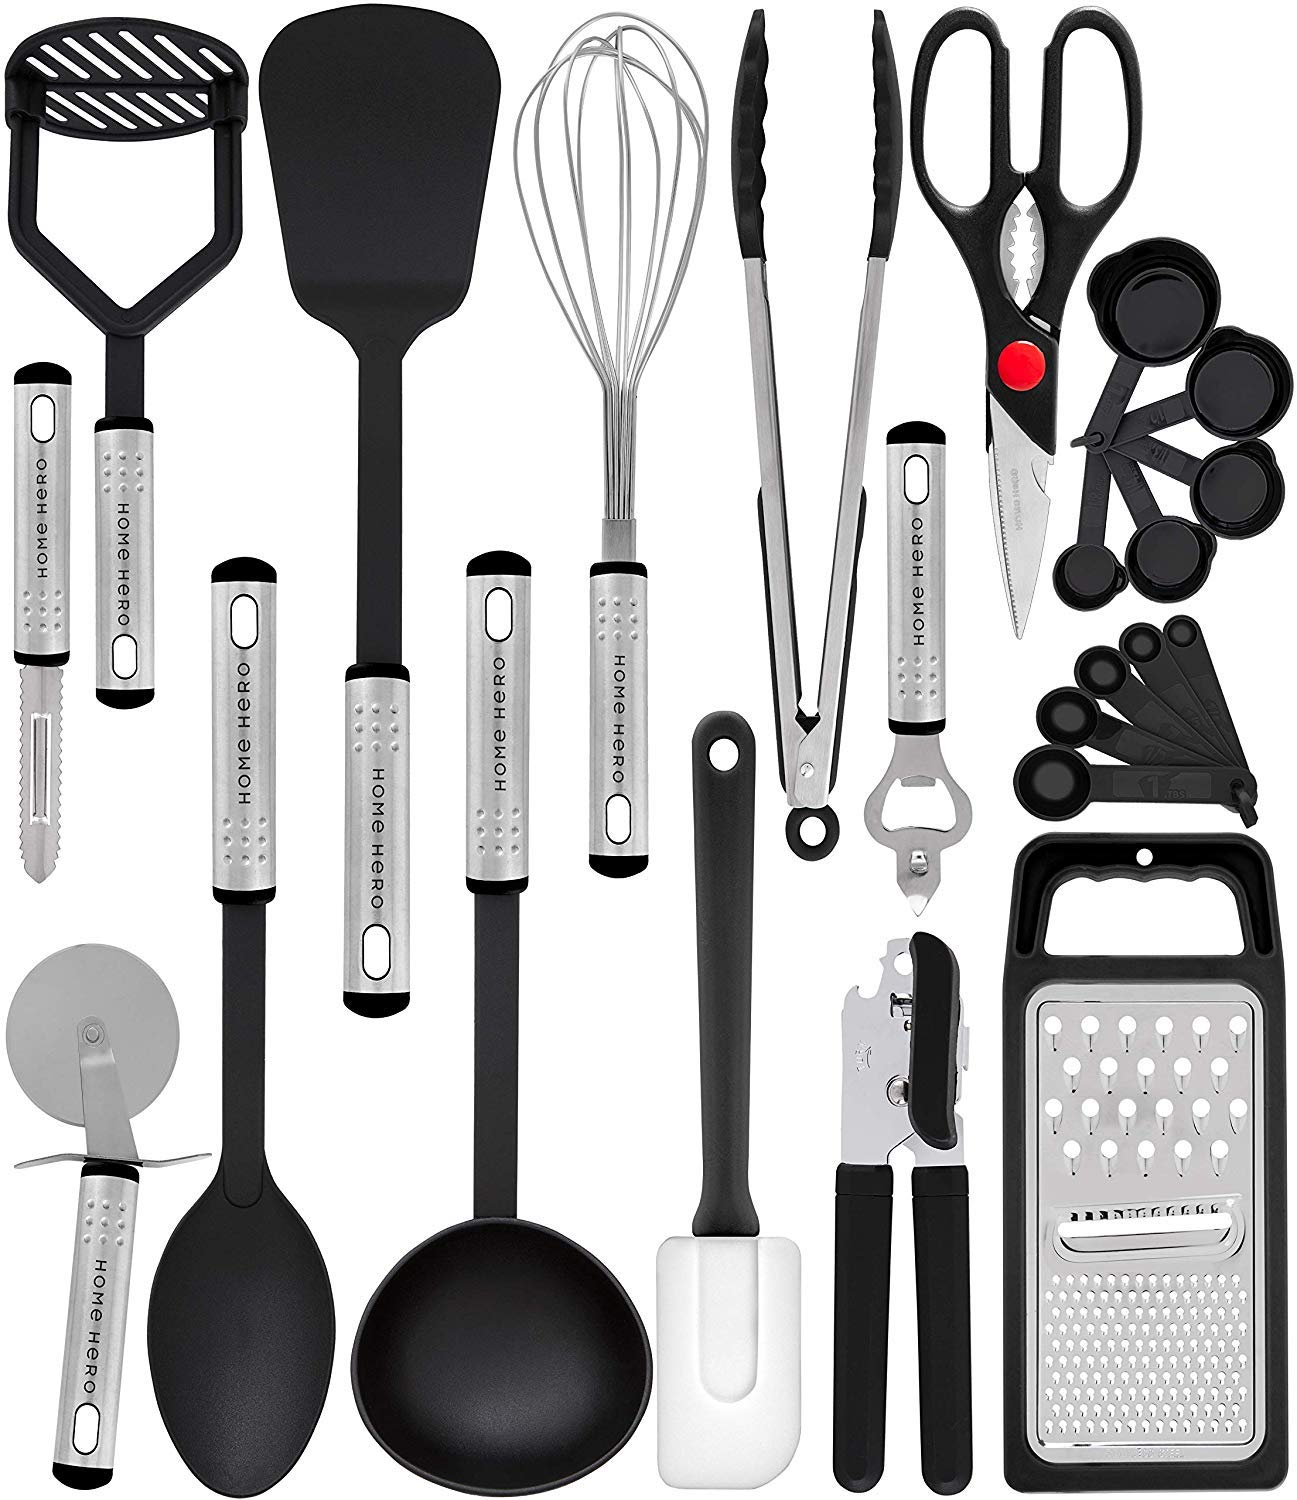 Home Hero Kitchen Utensil Set 23 Nylon Cooking Utensils Kitchen Utensils With Spatula Kitchen Gadgets Cookware Set Best Kitchen Tool Set